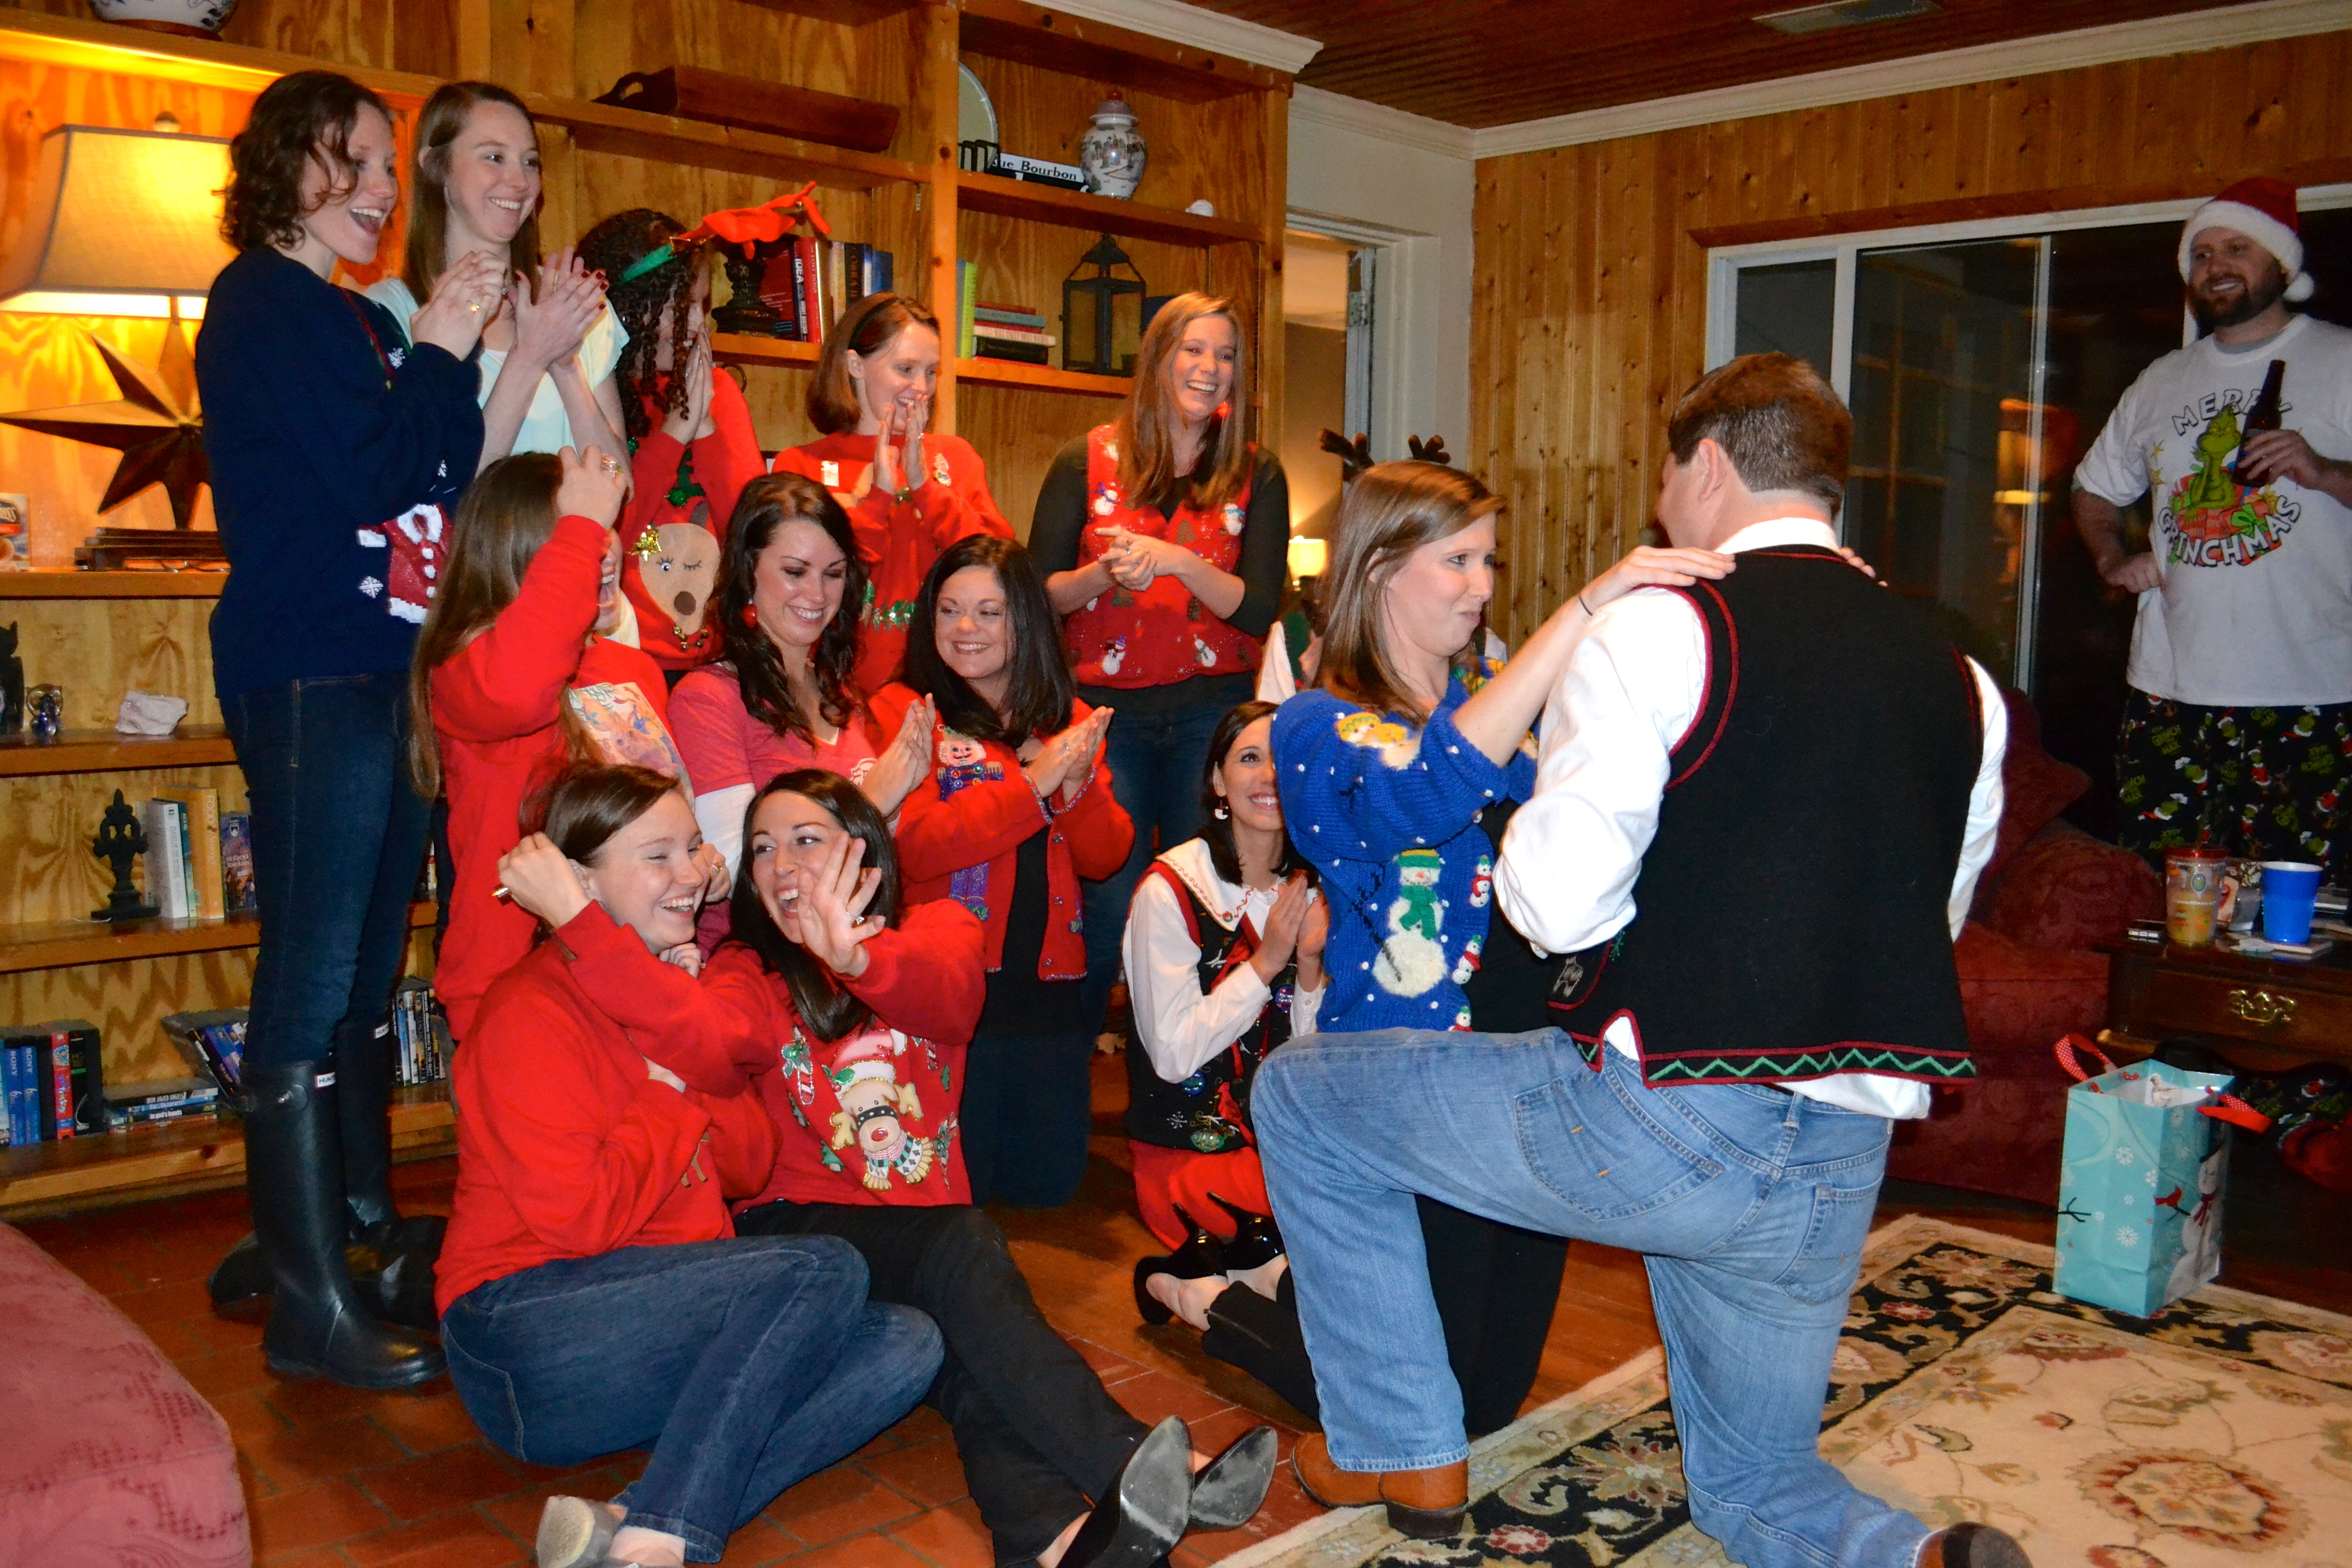 Image 2 of Meredith and Josh | Christmas Party Proposal